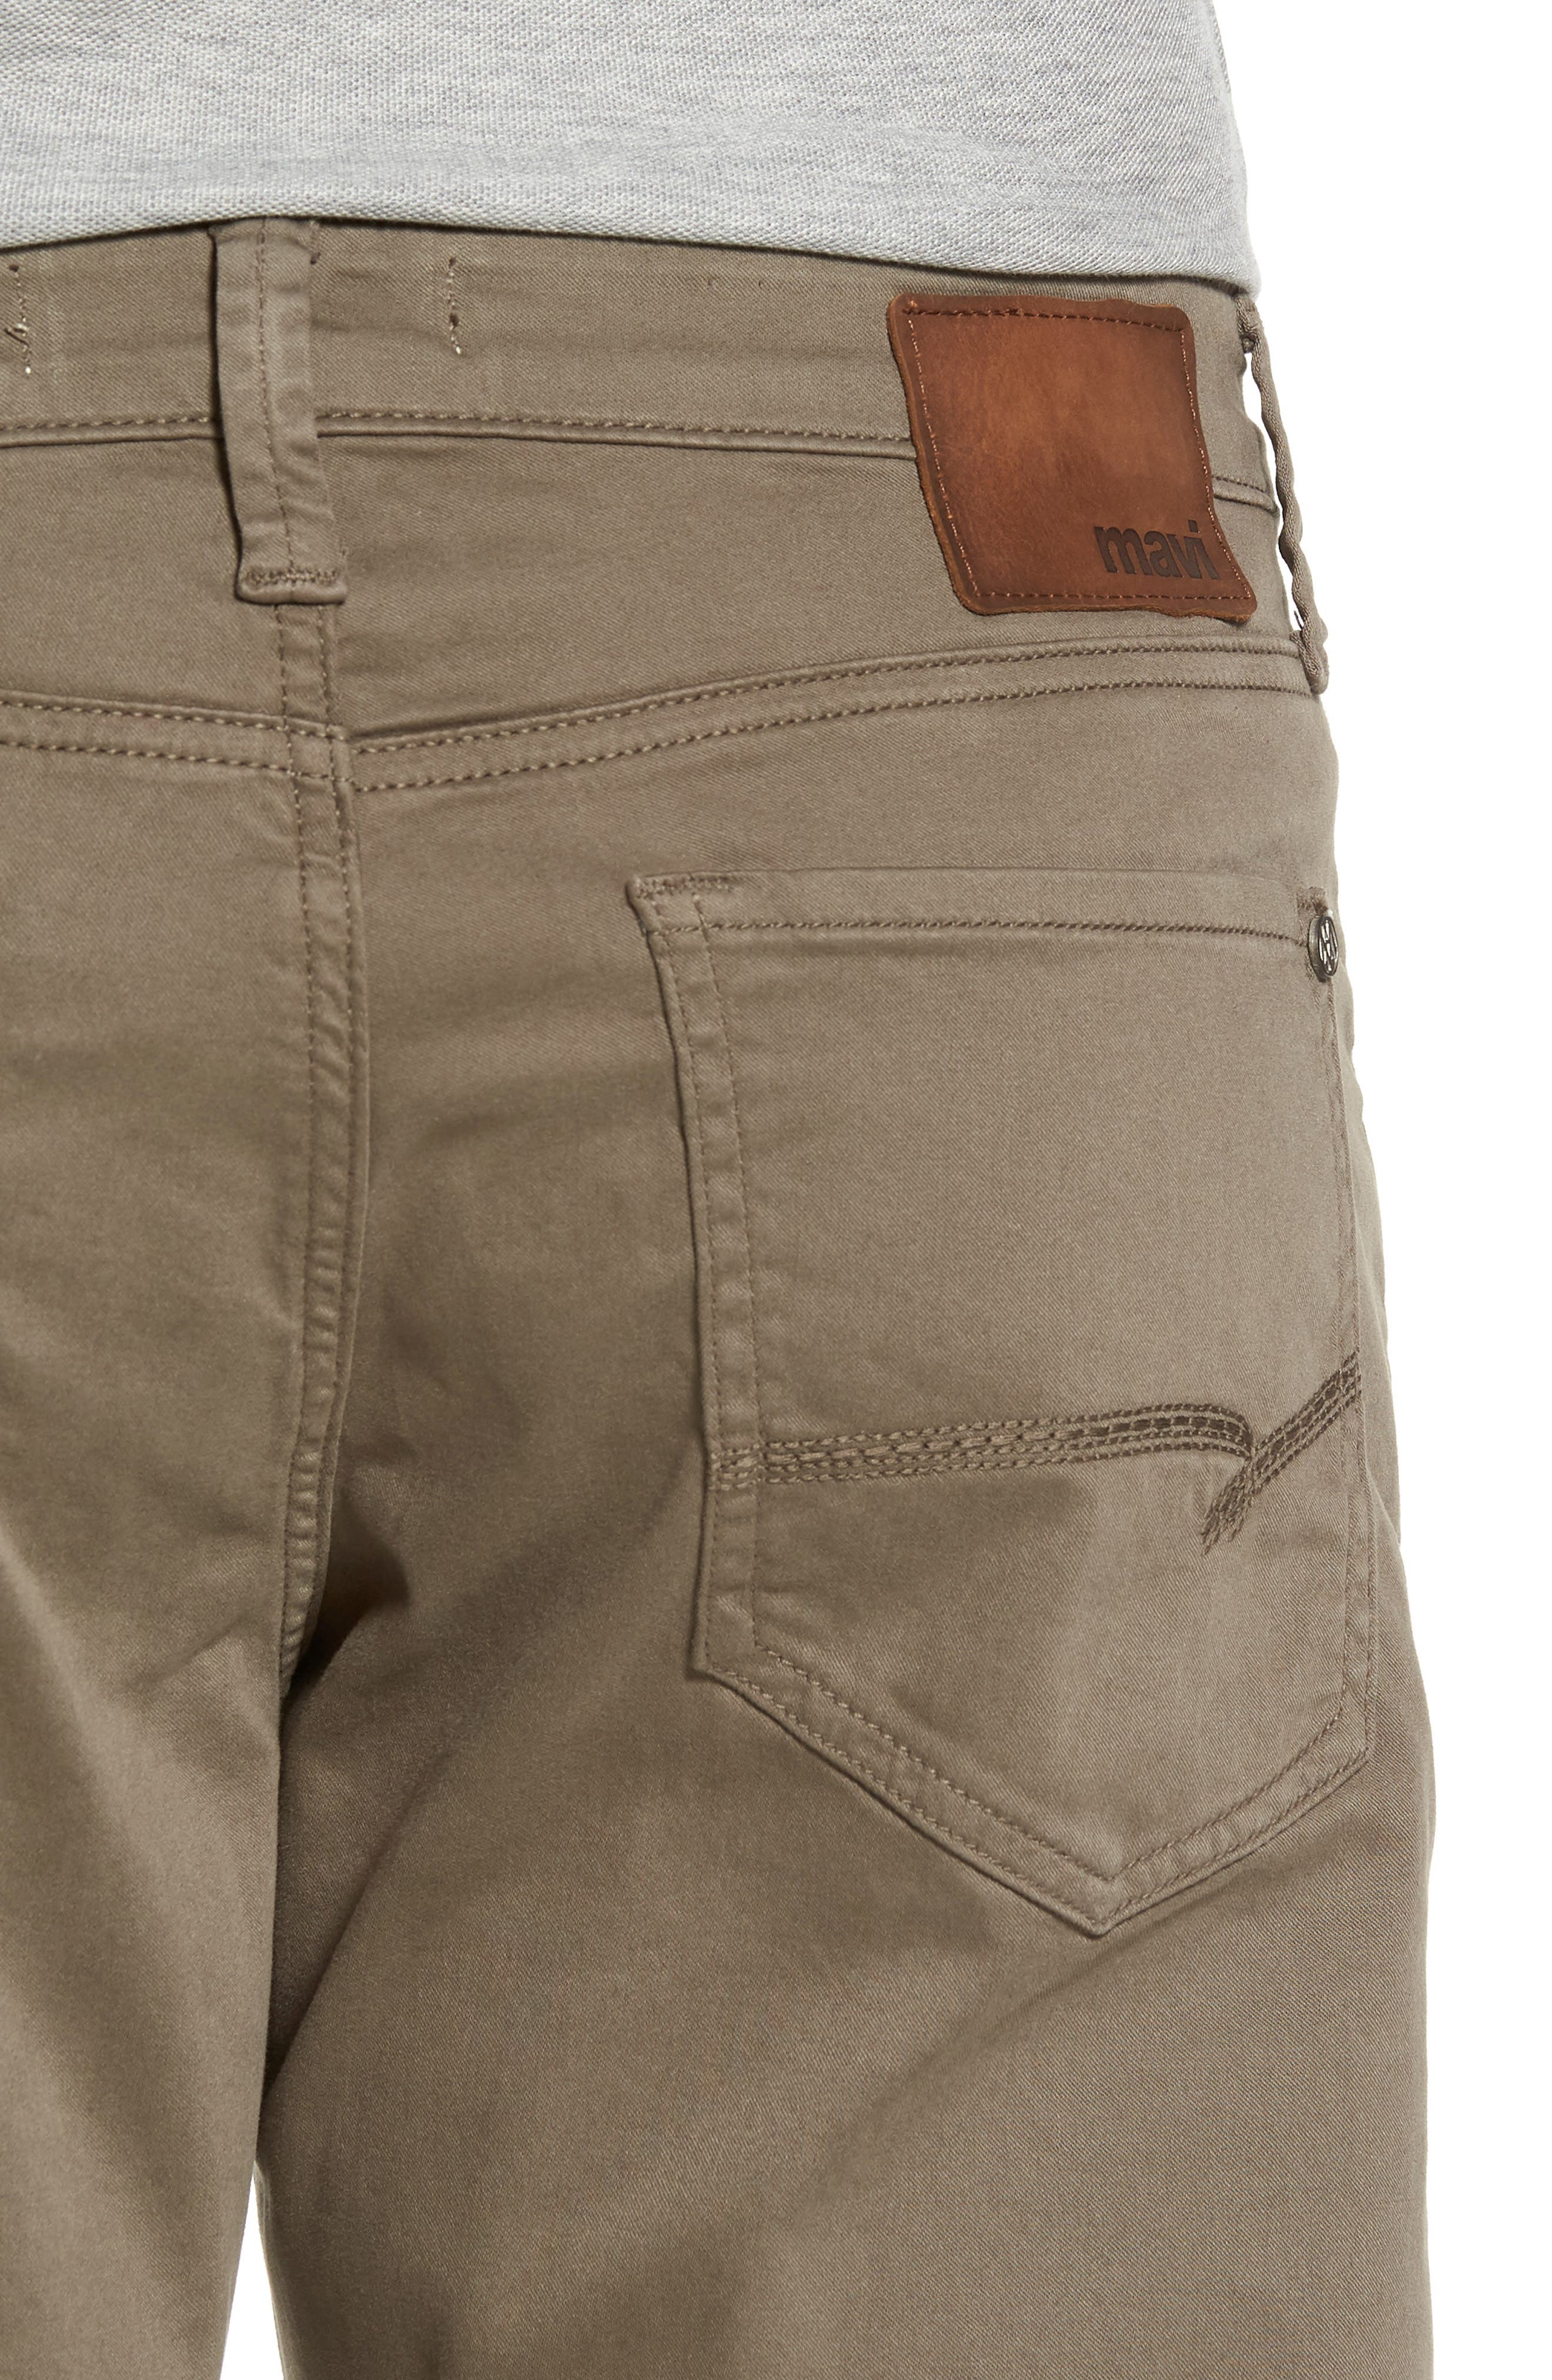 Matt Relaxed Fit Twill Pants,                             Alternate thumbnail 4, color,                             Dusty Olive